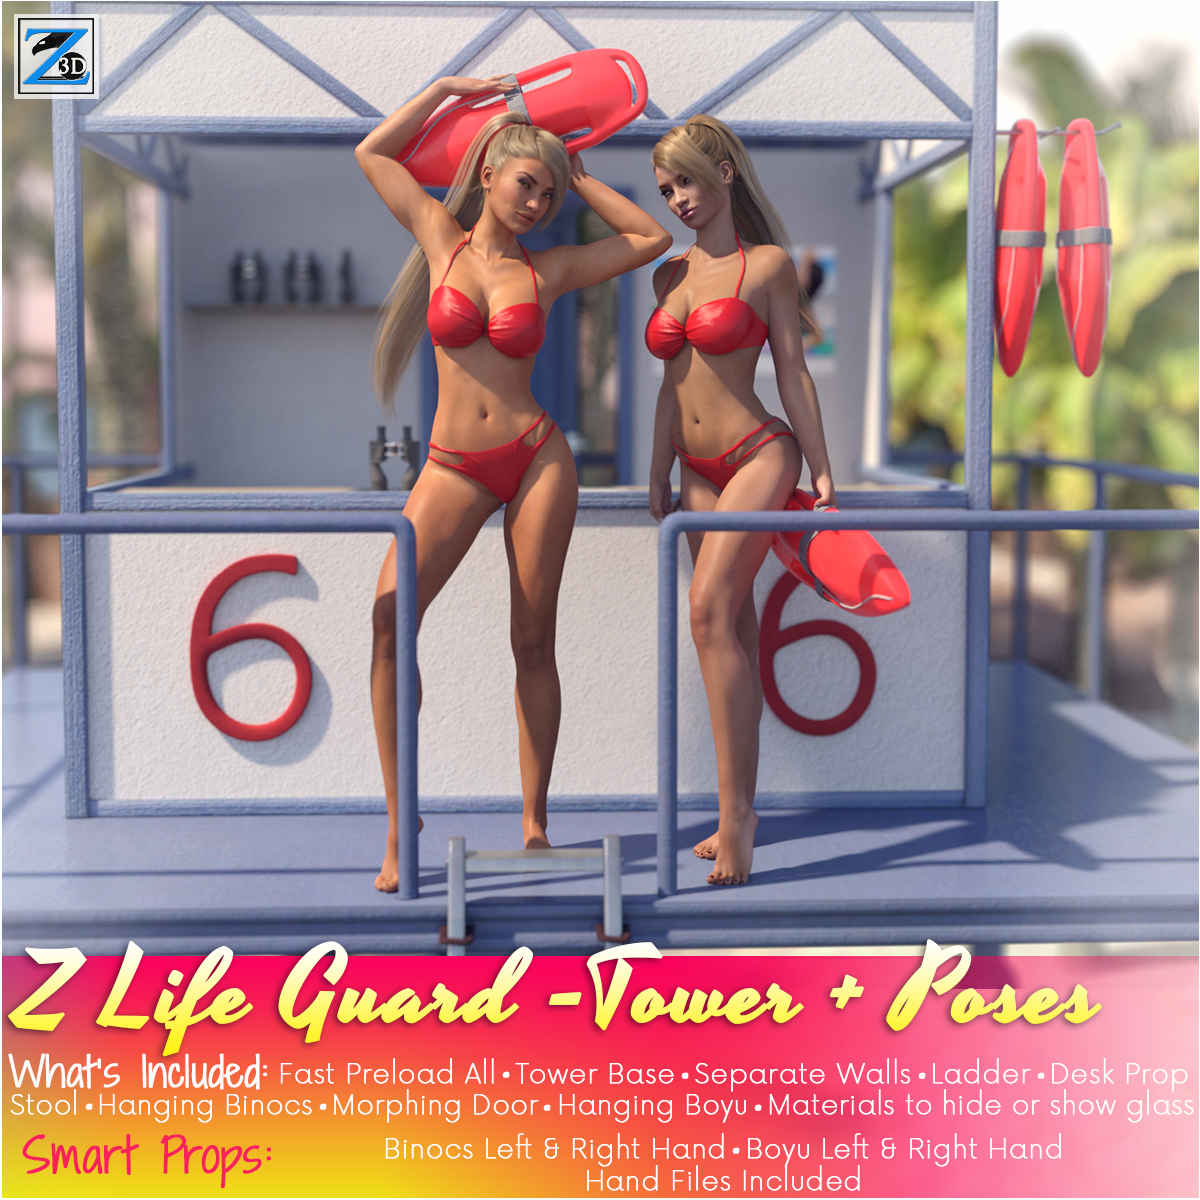 Z LifeGuard - Tower and Poses - Daz Studio